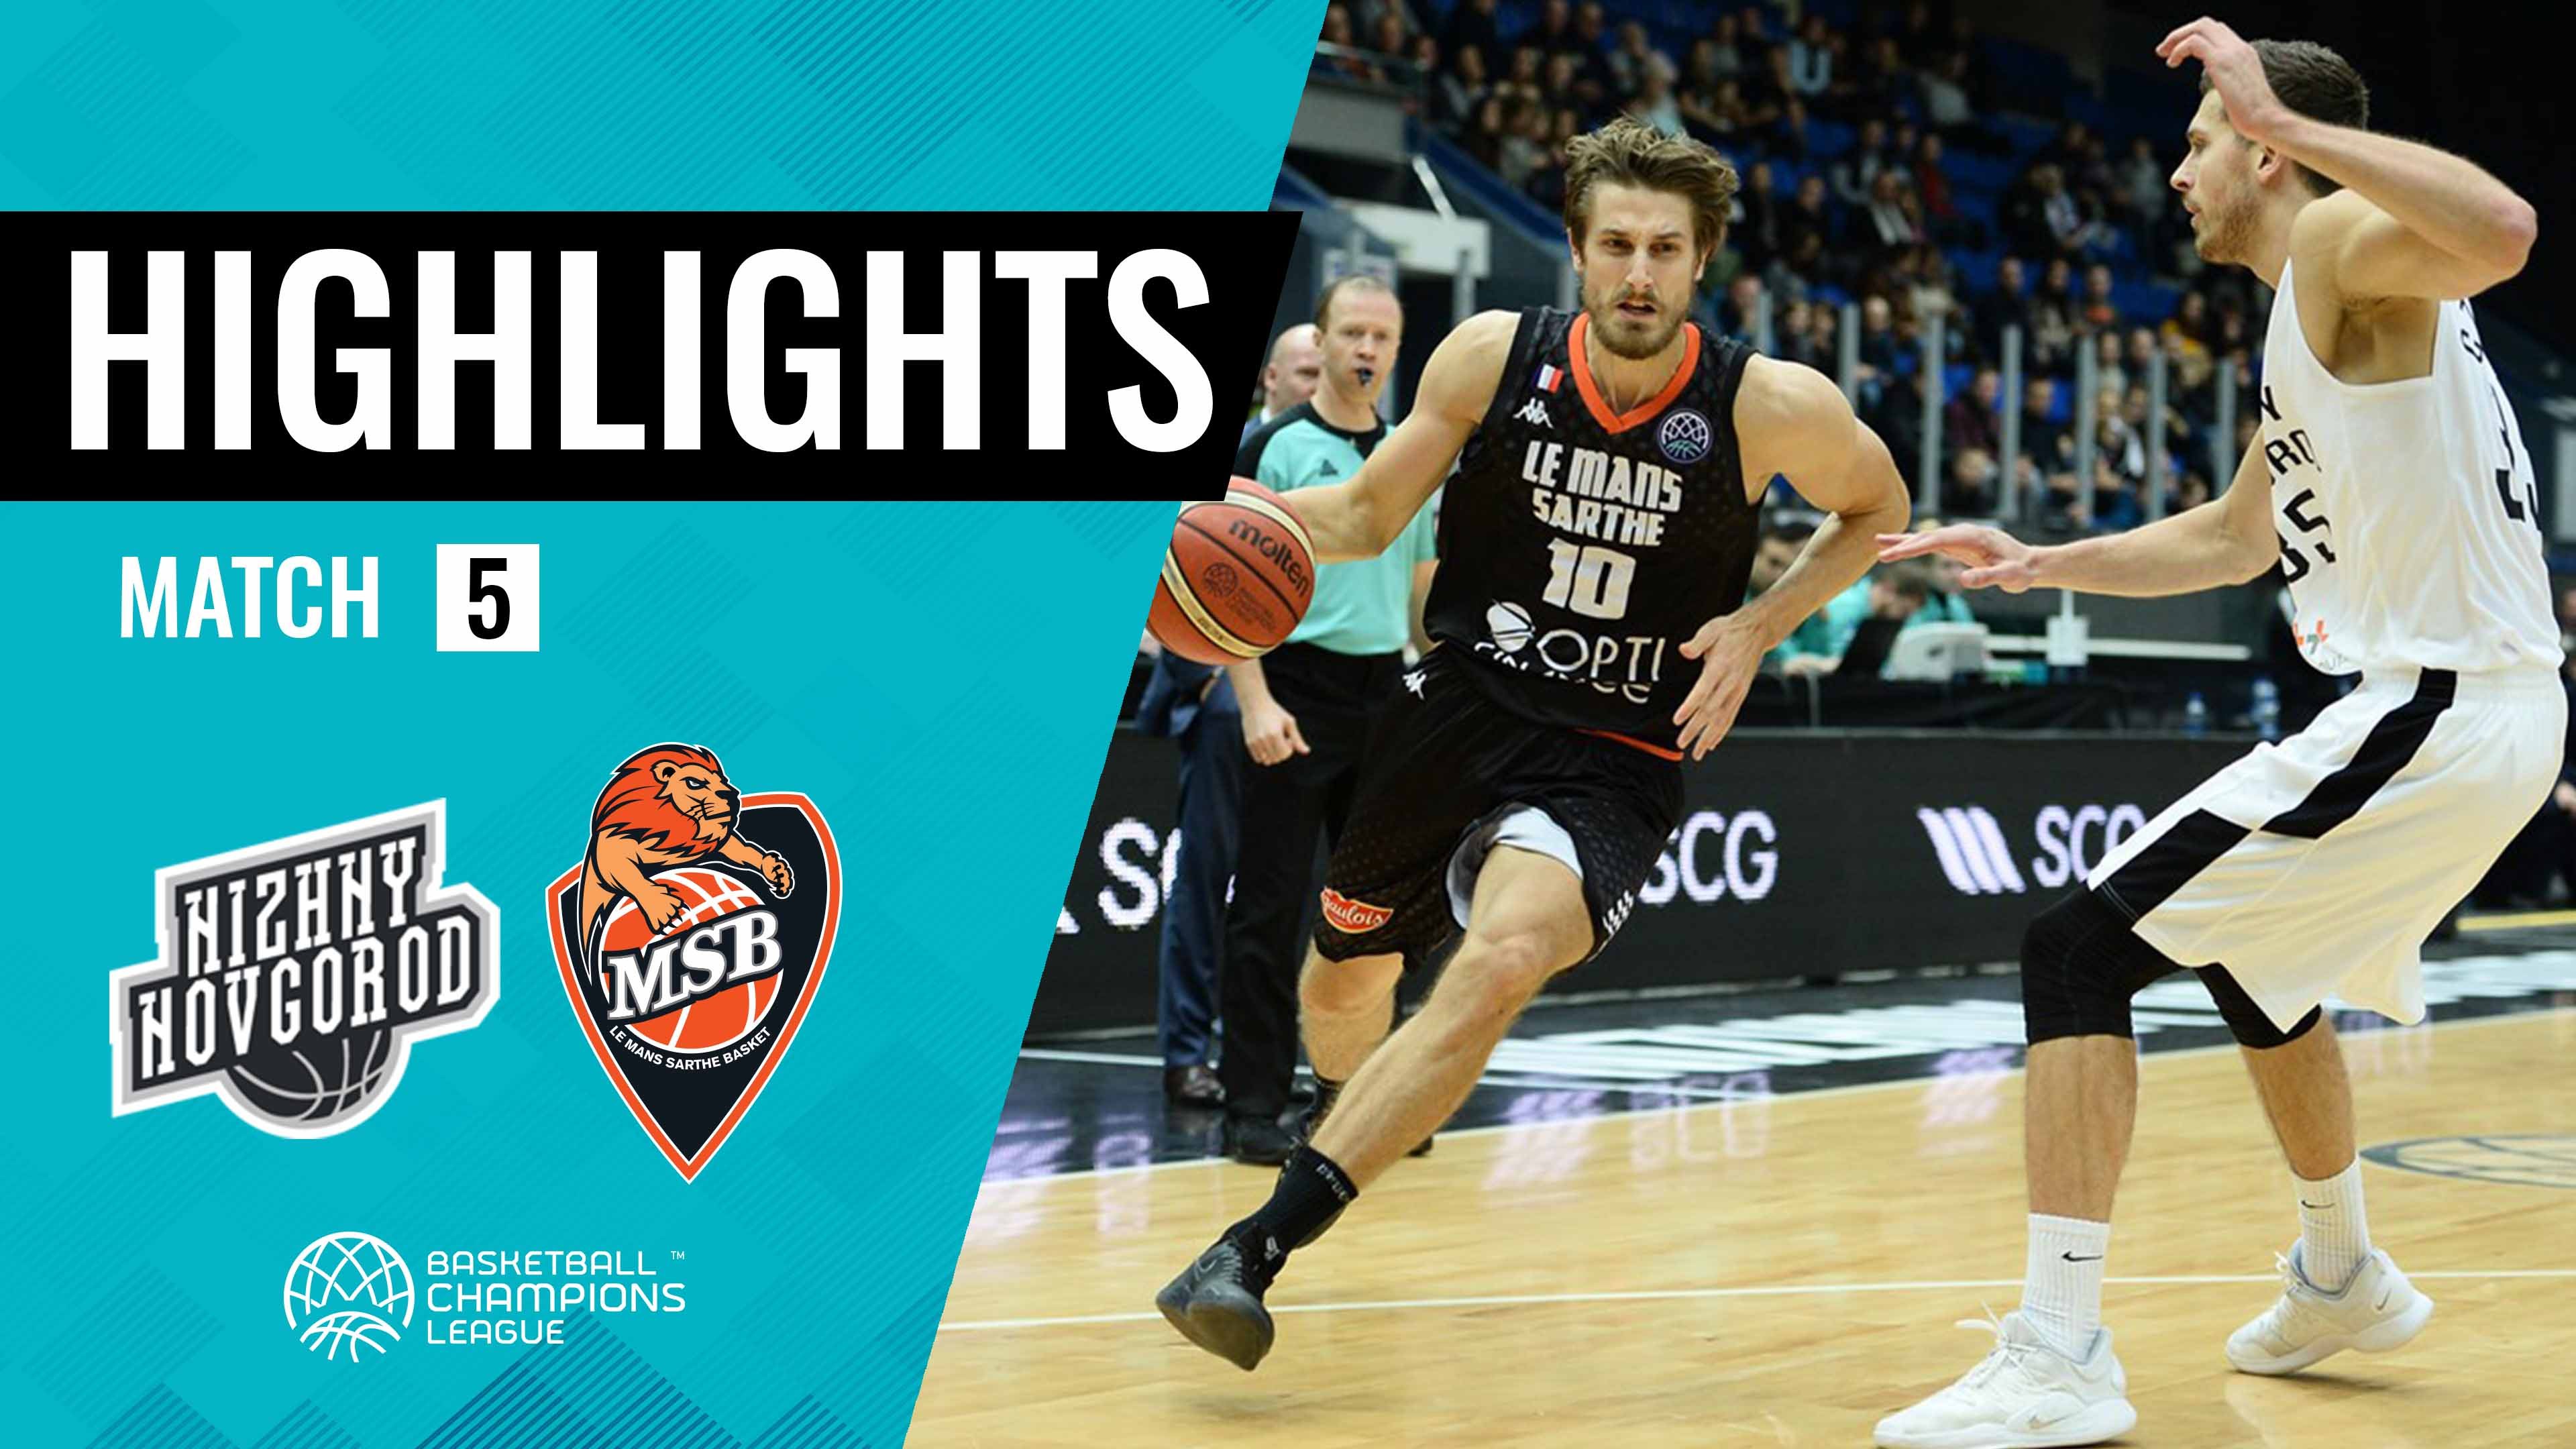 Highlights NIZHNY NOVGOROD - MSB